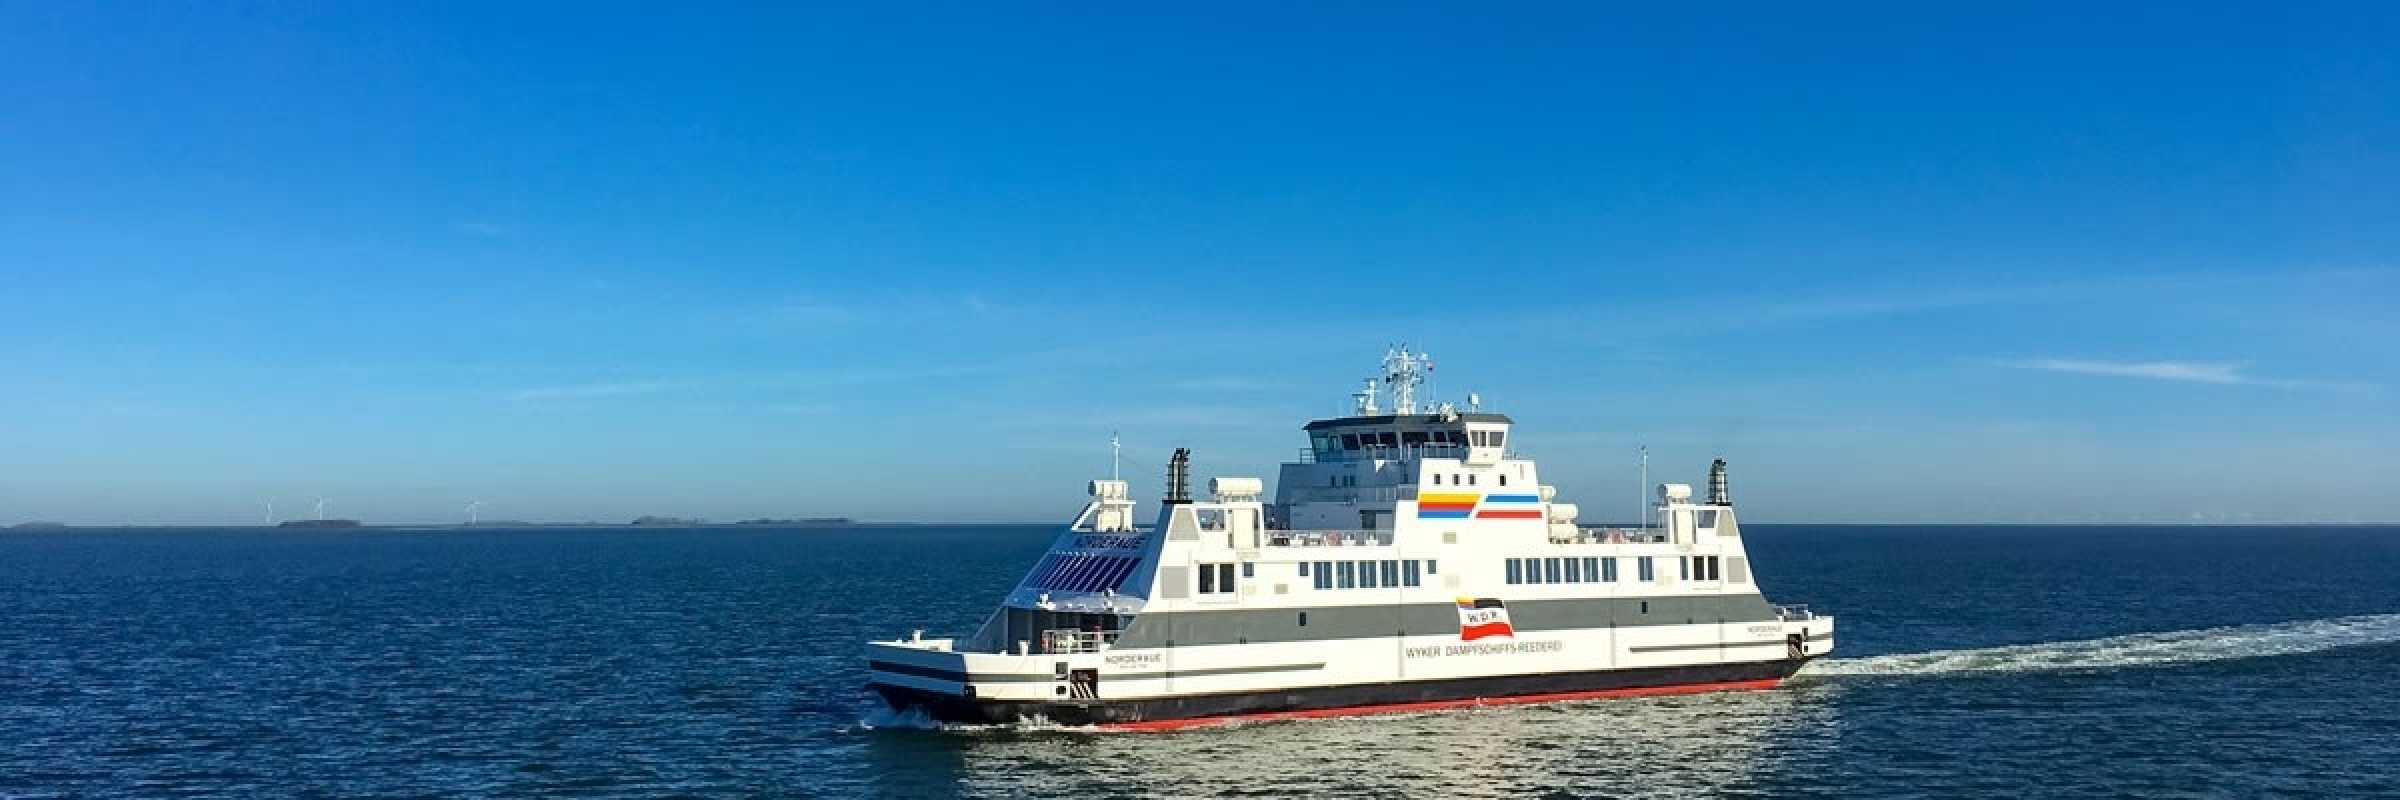 "Voith Schneider propellers make the new ""Norderaue"" ferry efficient and environmentally friendly"